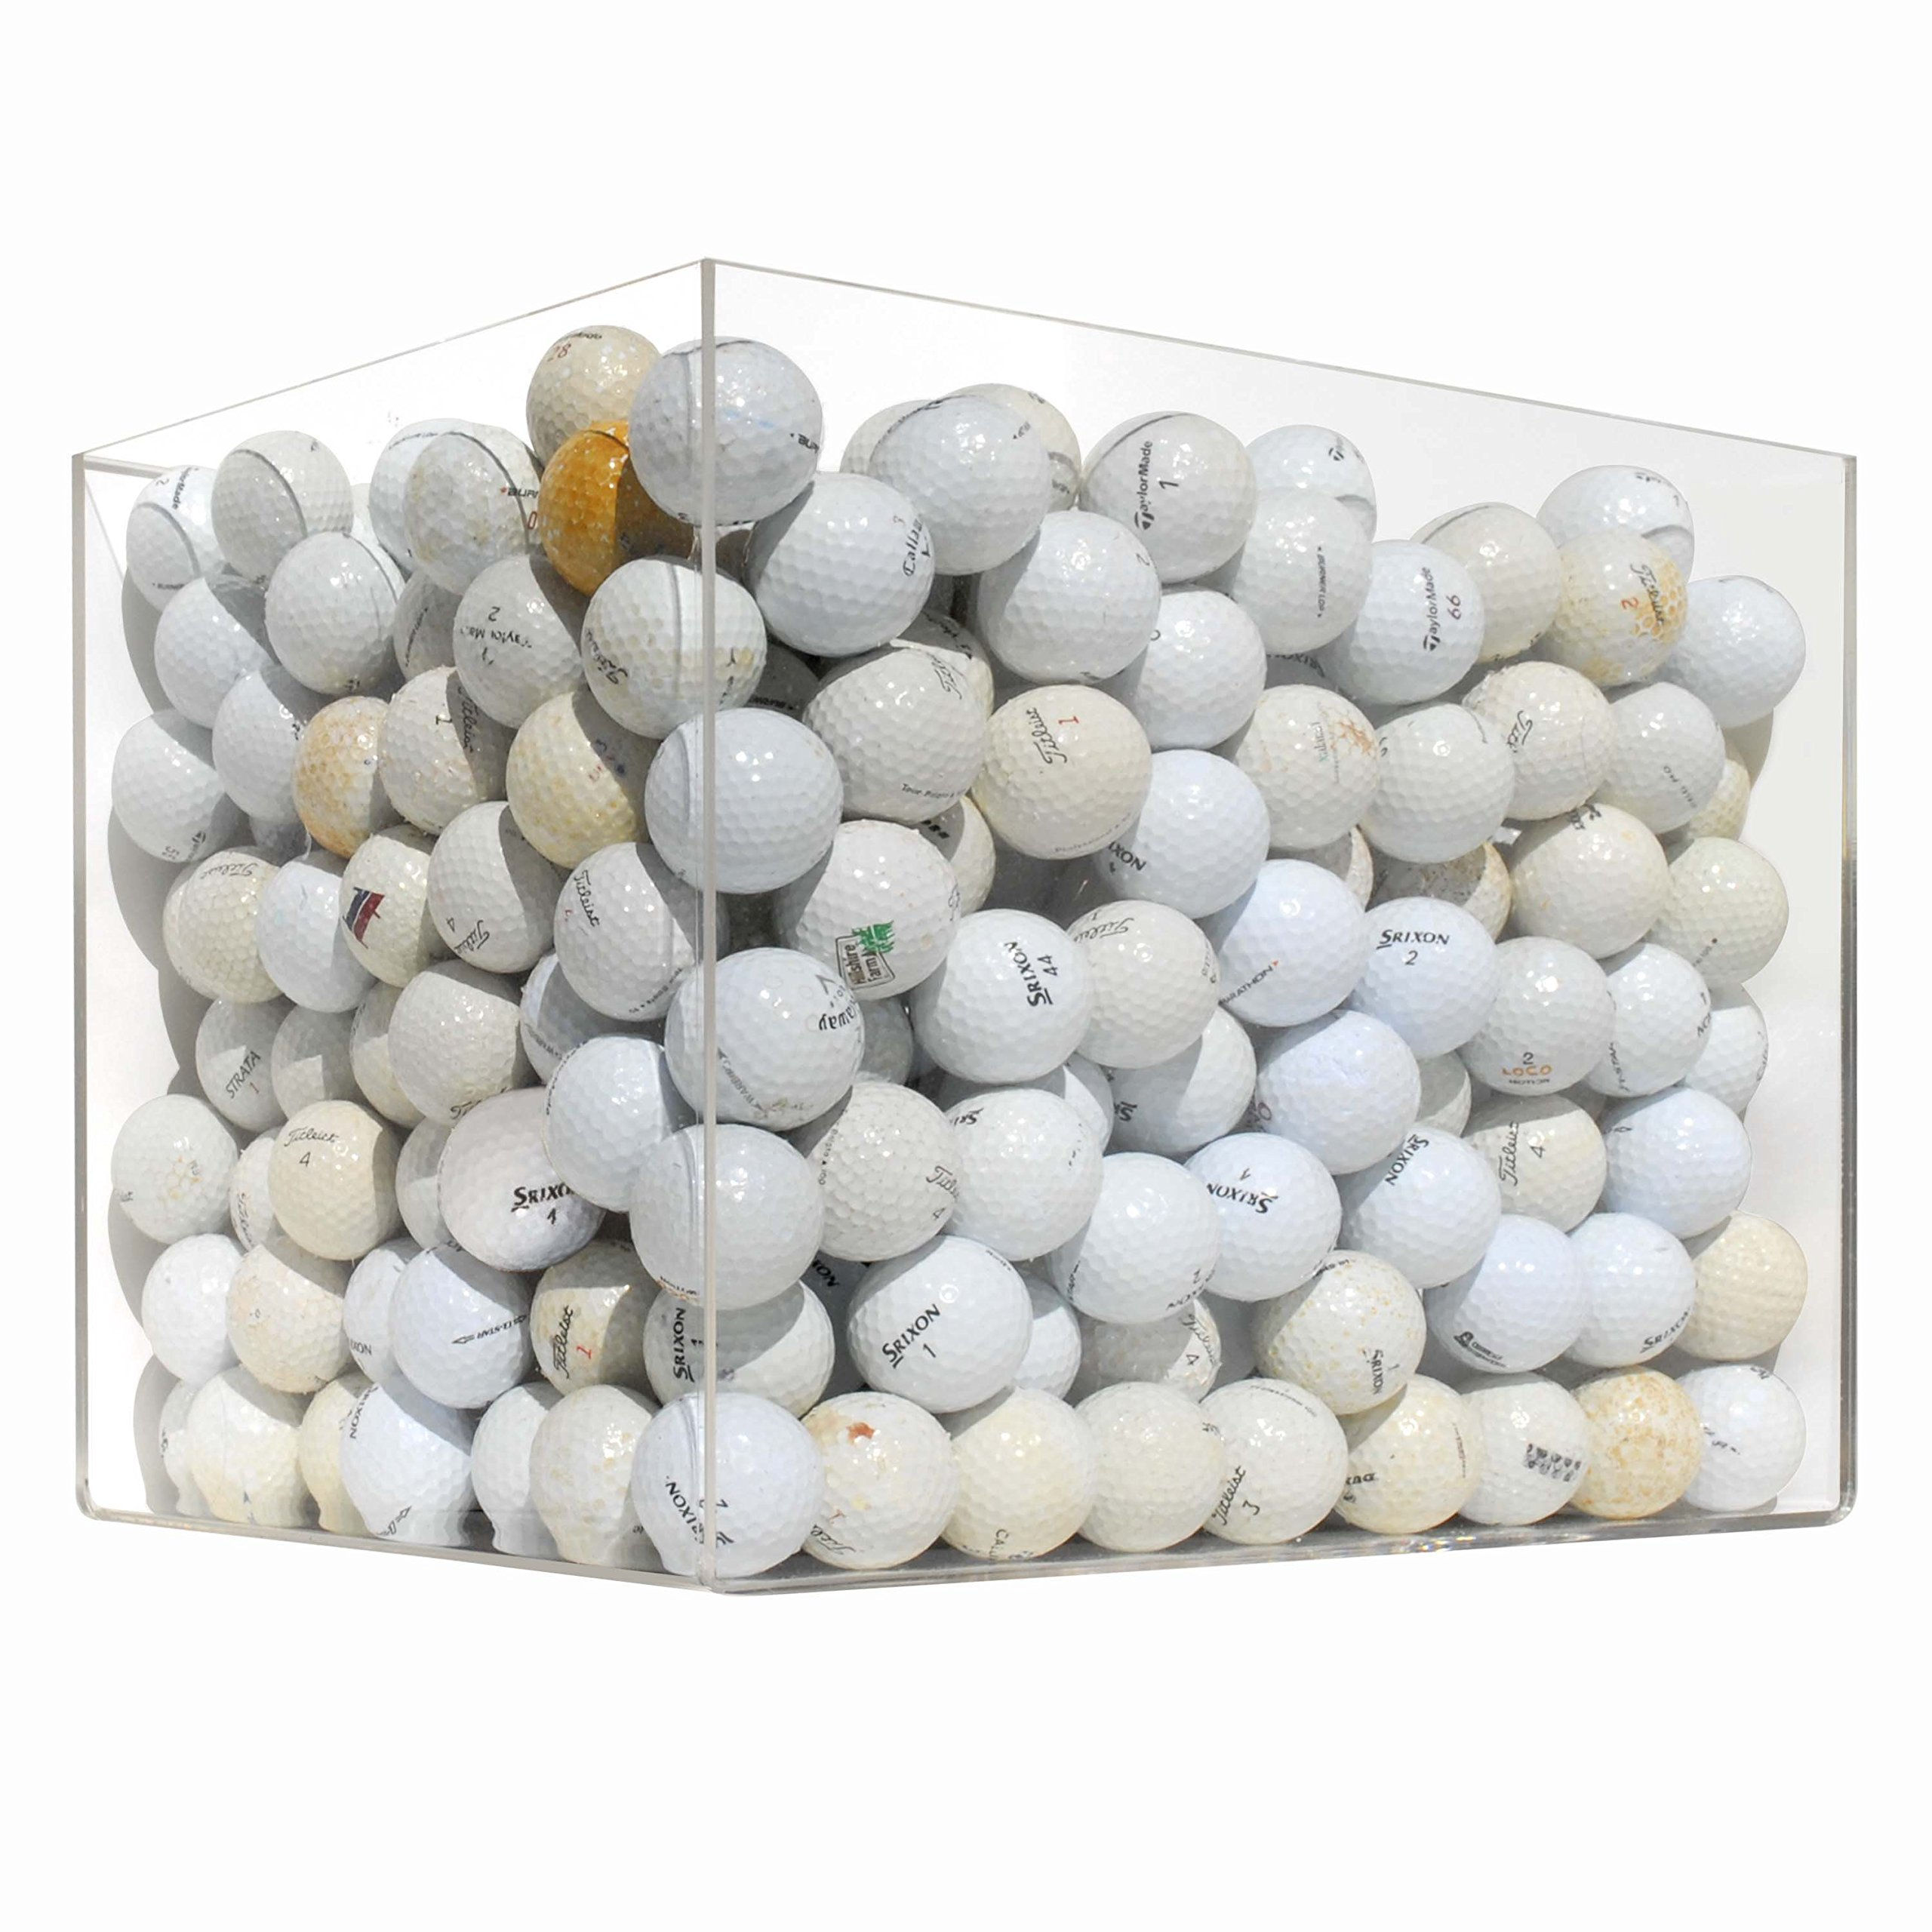 2000 Hit-Away Mix (Shag) - Recycled (Used) Golf Balls